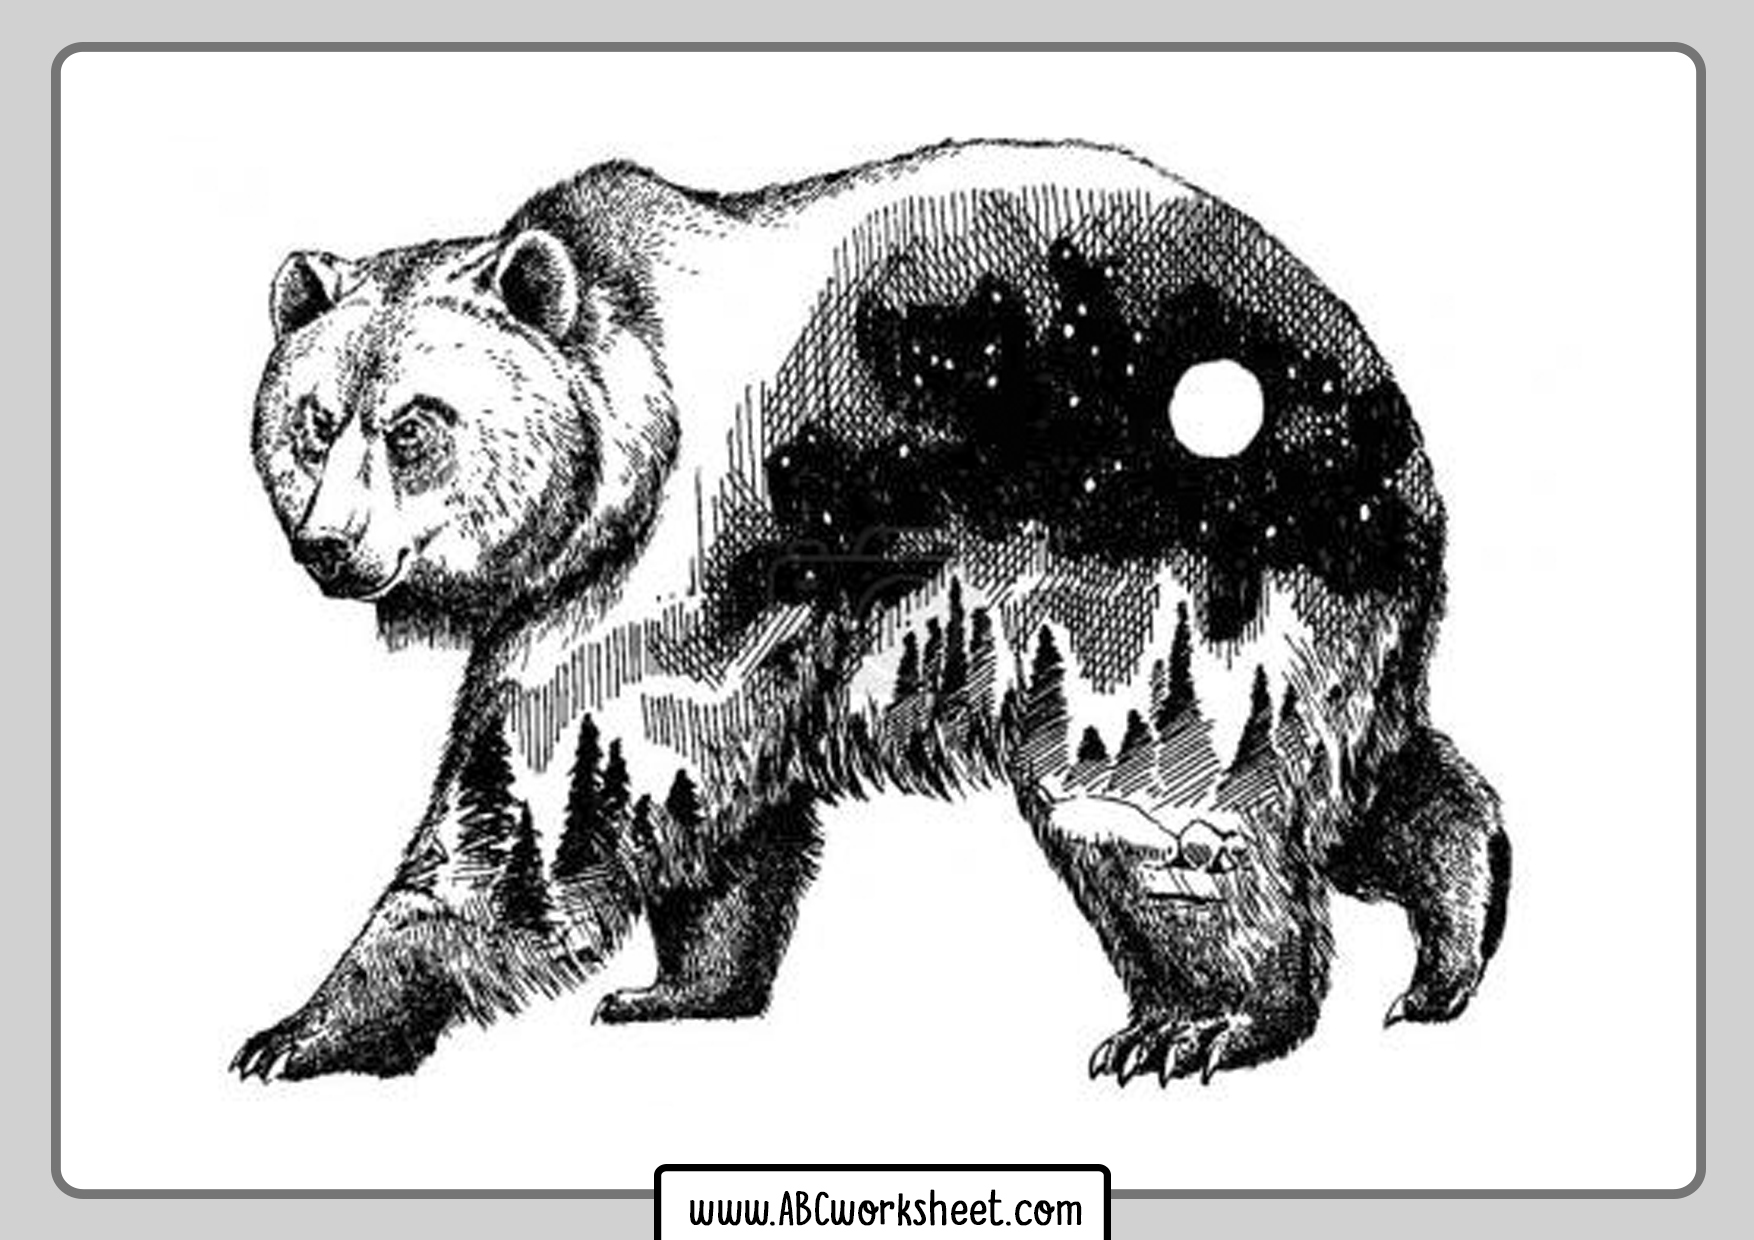 Illustration Grizzly Bear For Coloring